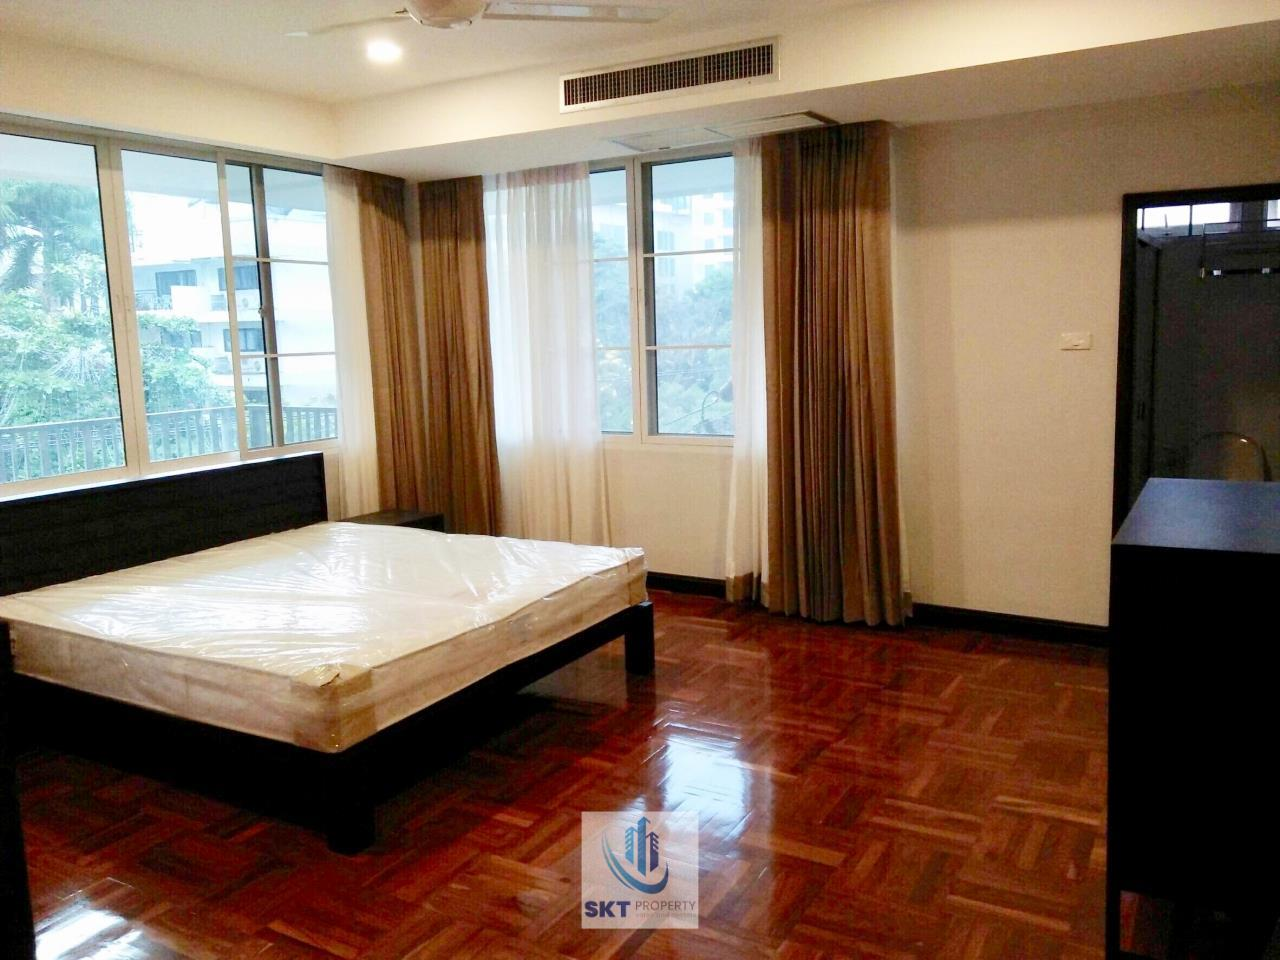 Sukritta Property Agency's For Rent PET FRIENDLY APARTMENT Insaf Tower Near Bts Nana 7